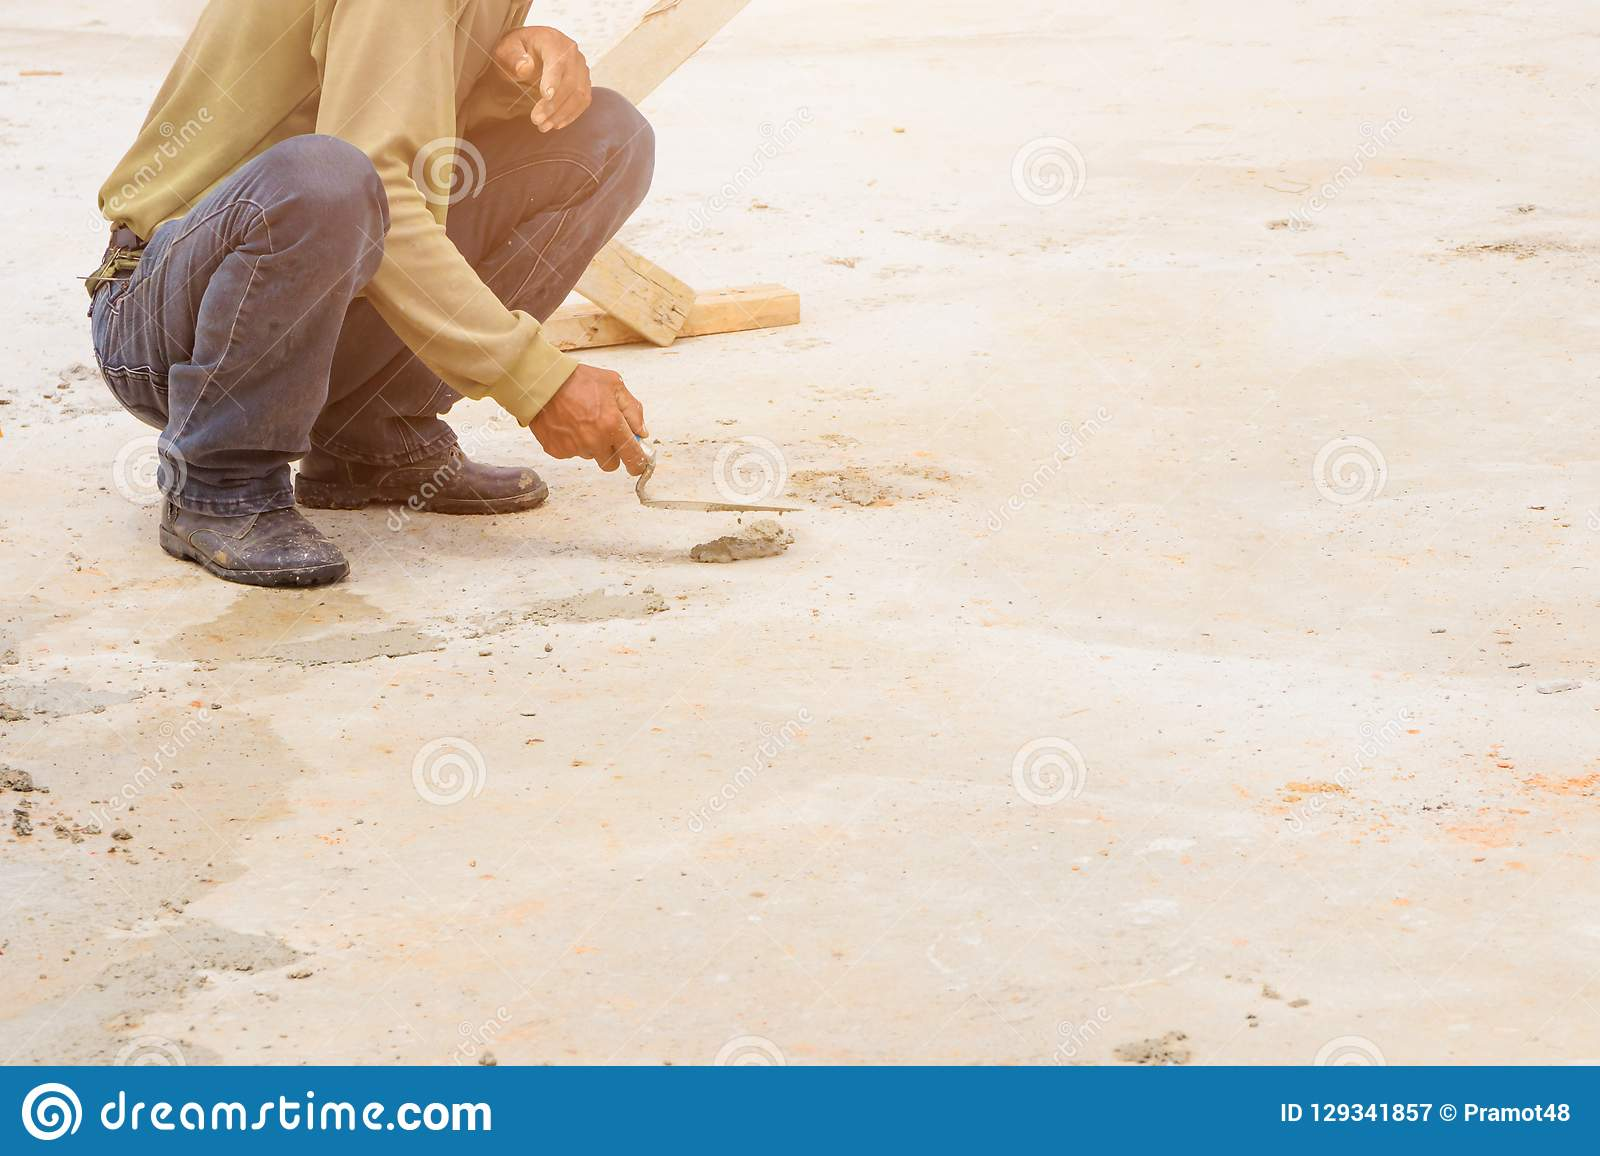 Construction workers were plastering repair floor in workplace build a house